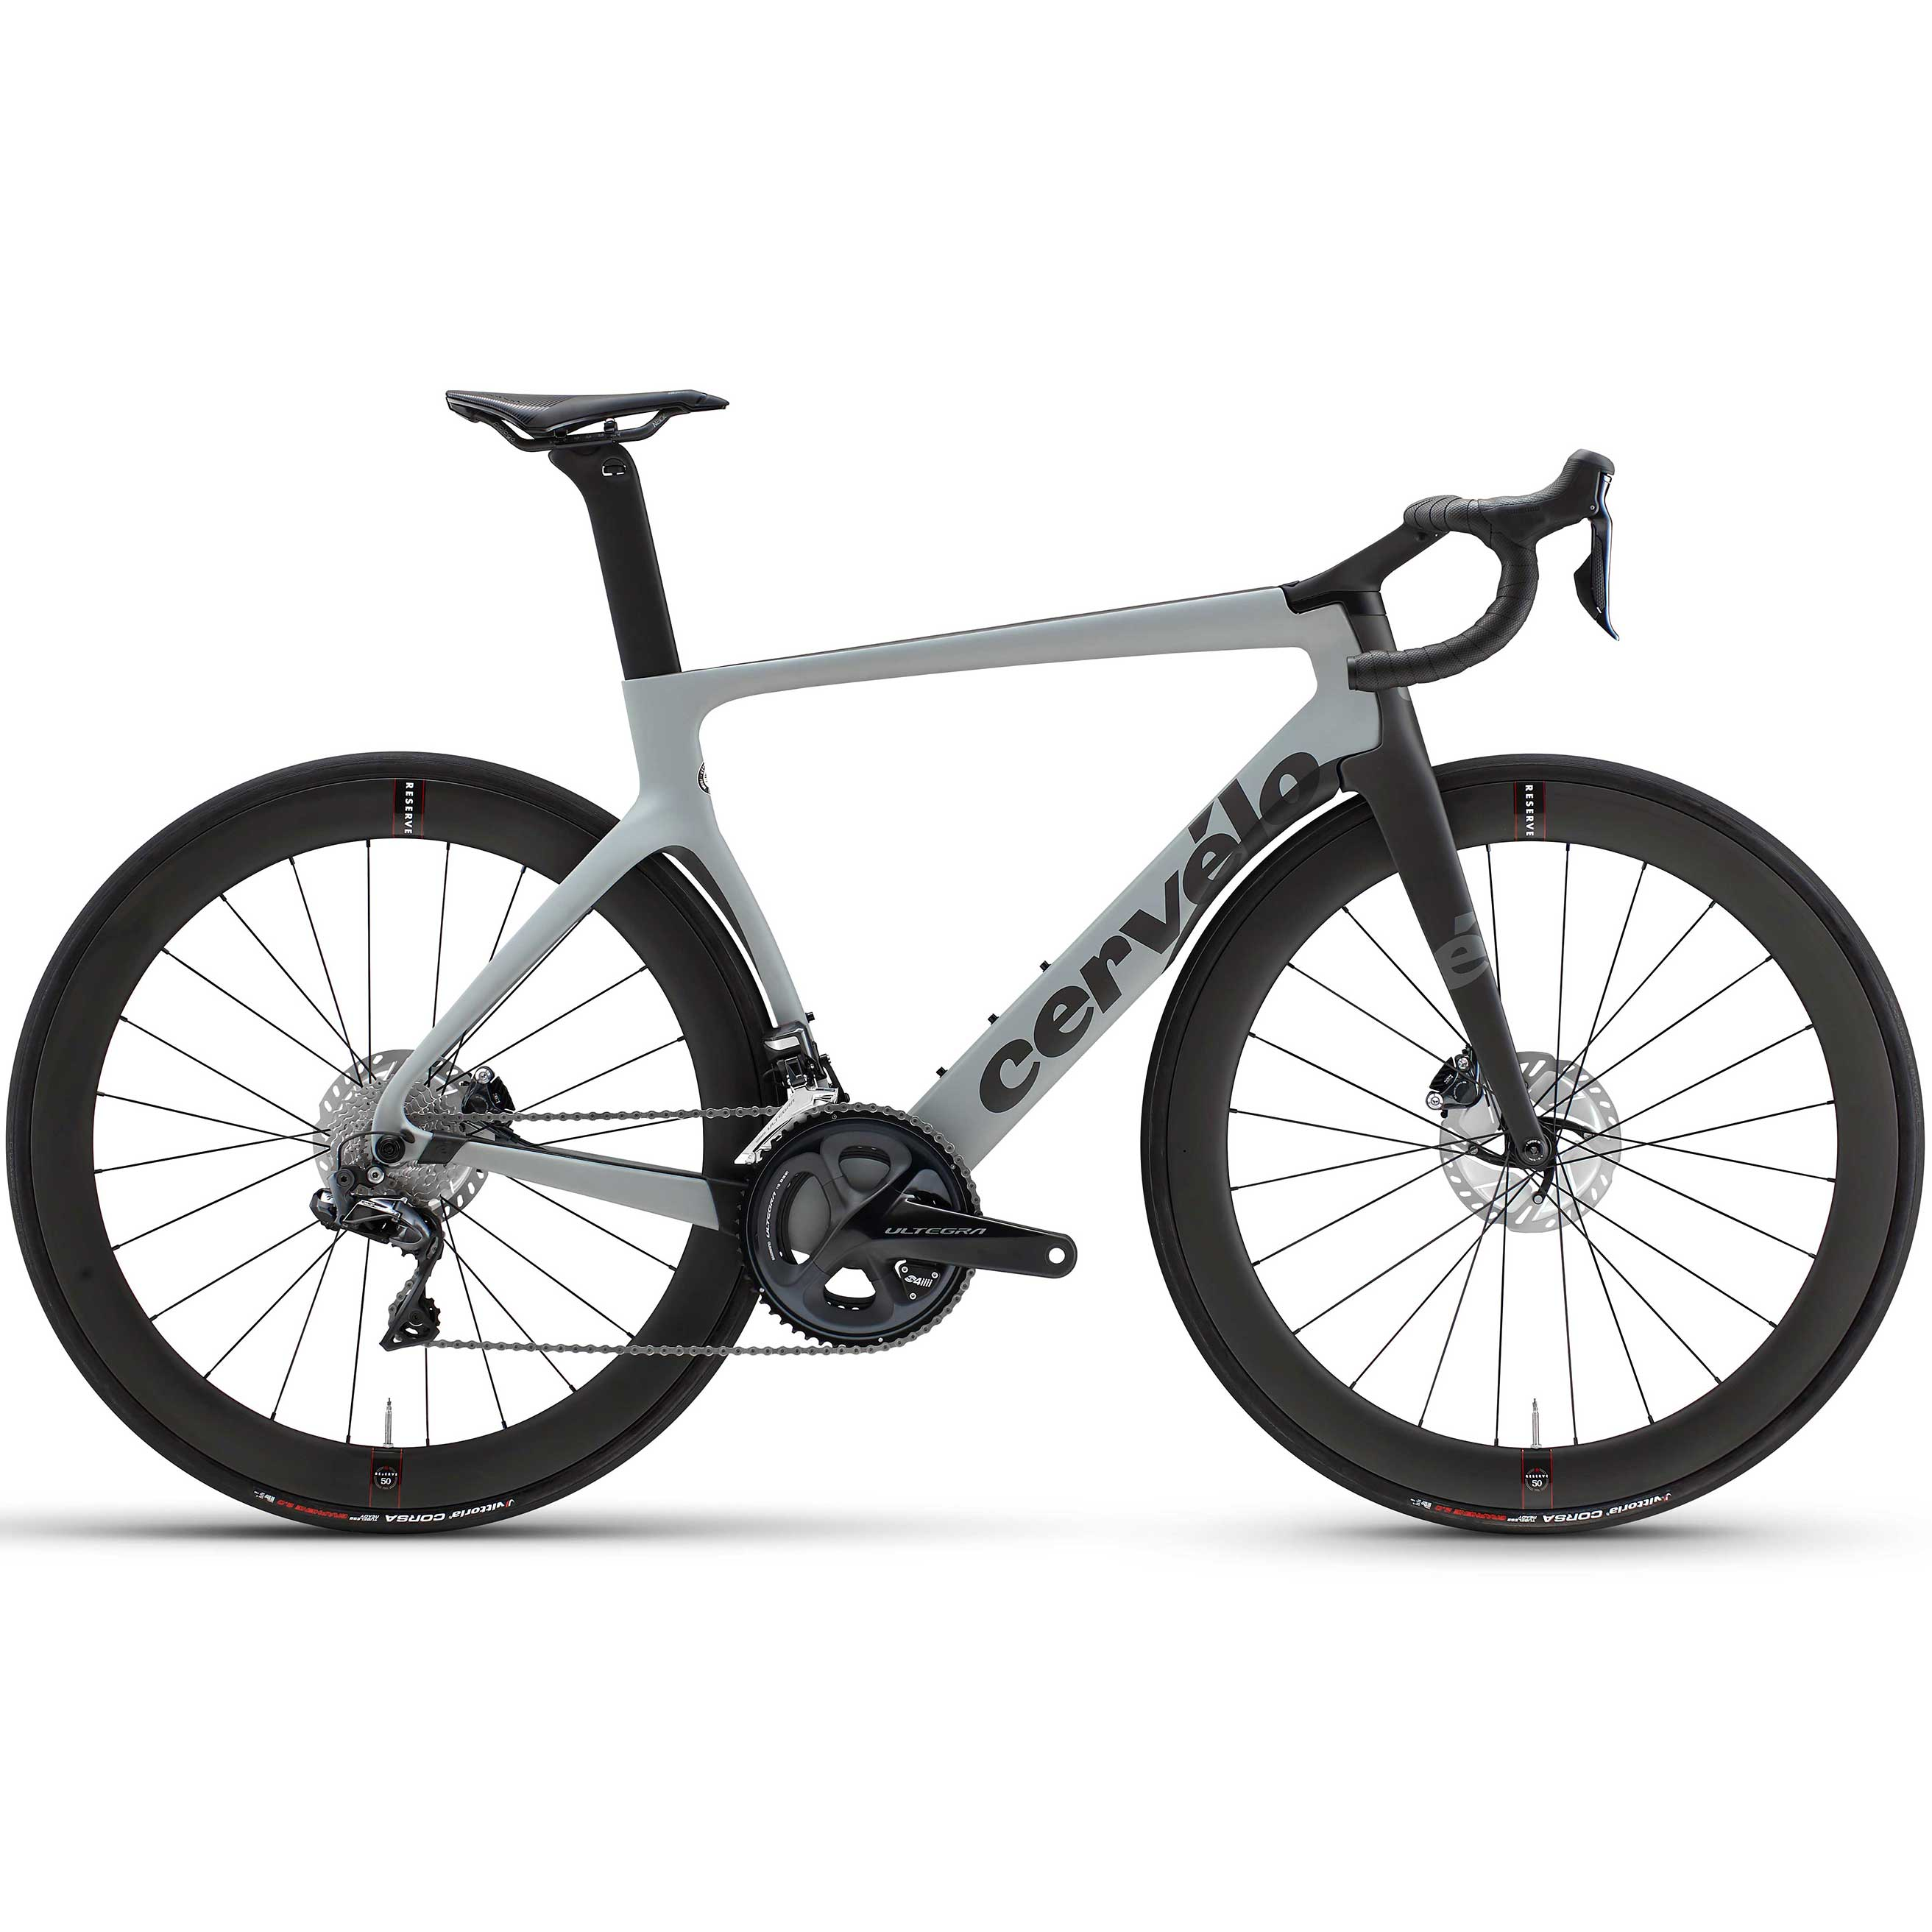 Cervelo S5 Disc Ultegra Di2 Road Bike